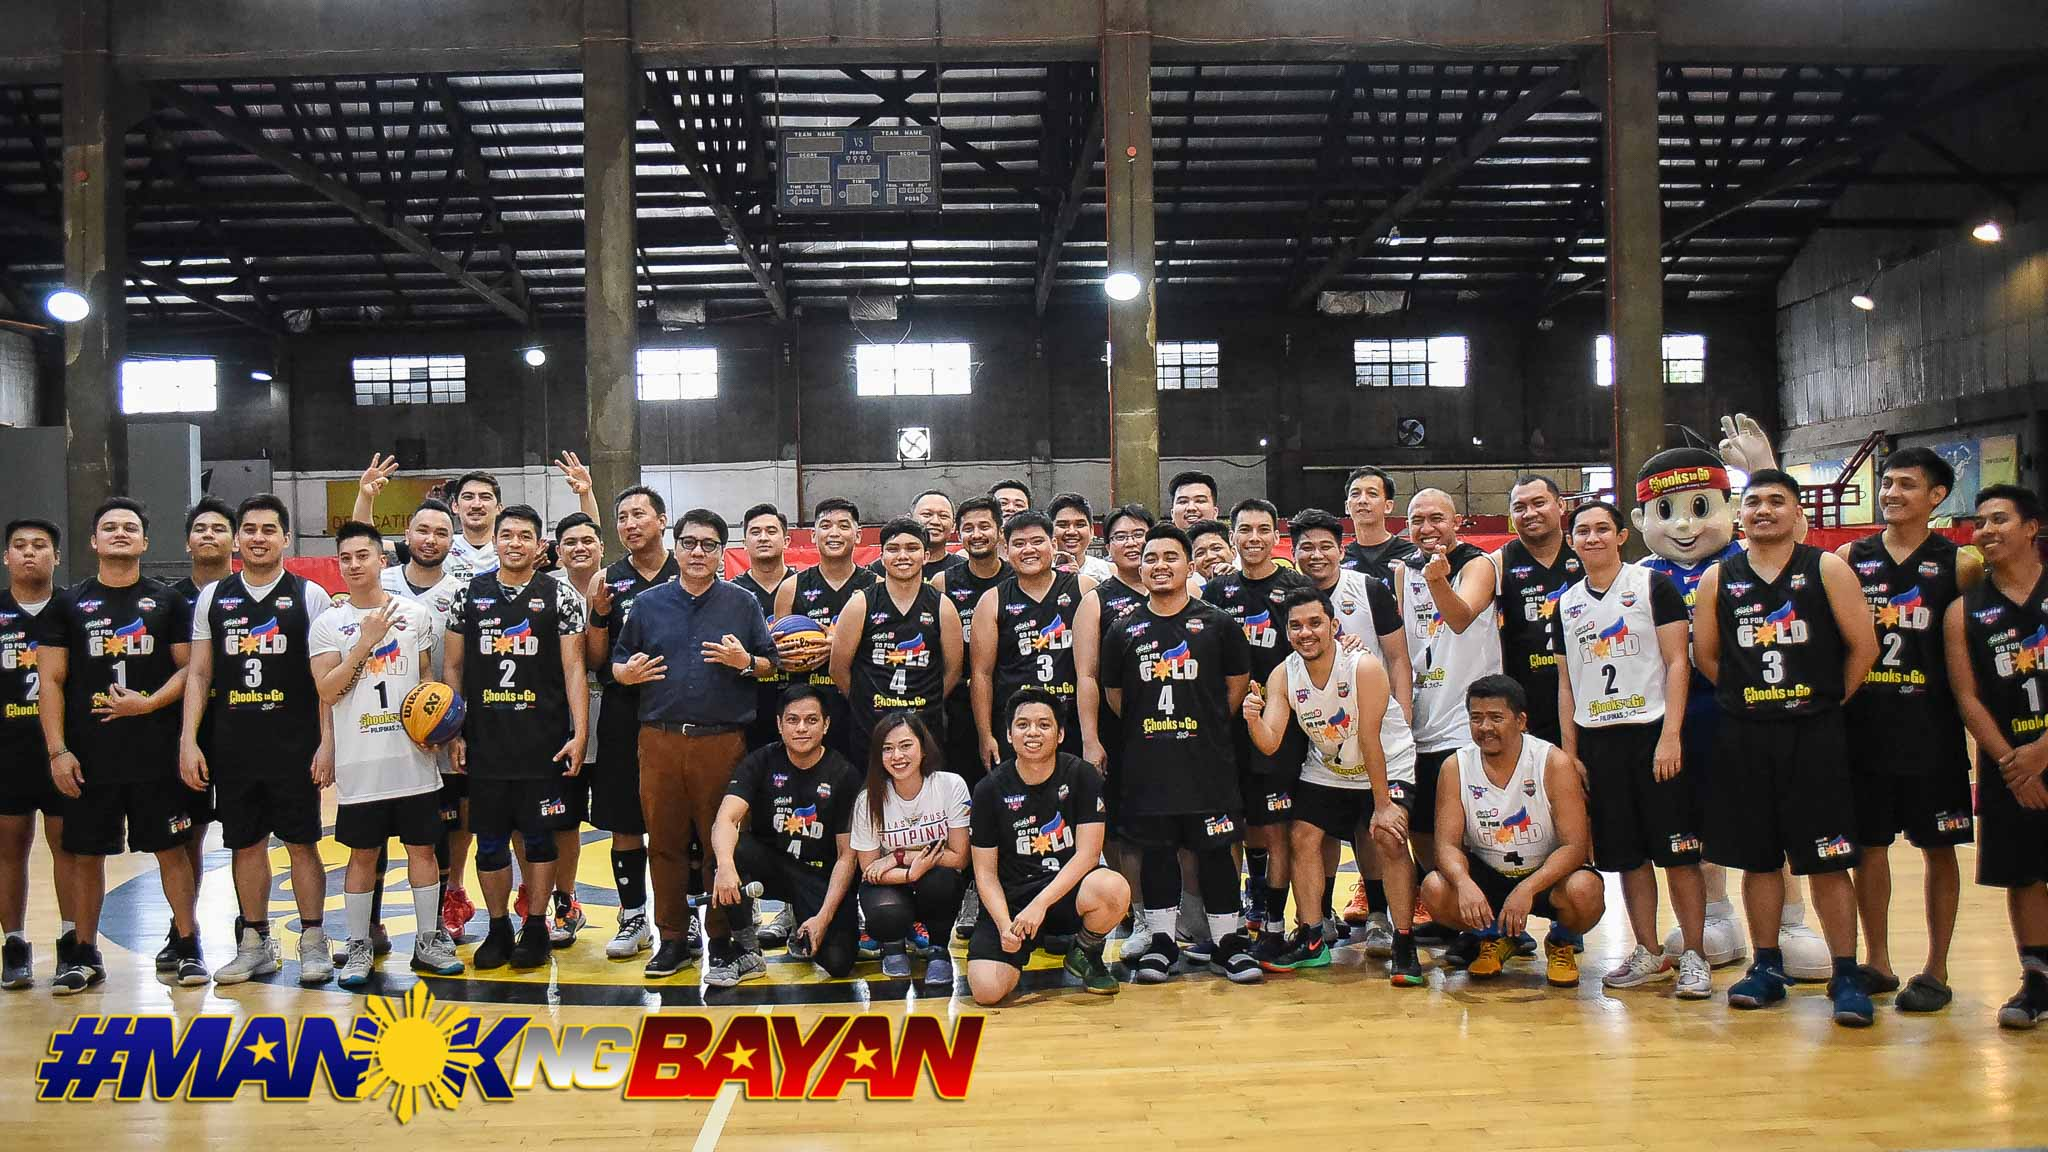 Tiebreaker Times Chooks 3x3, Go for Gold hold fellowship event for media, team owners 3x3 Basketball Chooks-to-Go Pilipinas 3x3 News  Team Go for Gold Chooks-to-Go 2019 Chooks-to-Go Pilipinas 3x3 Season